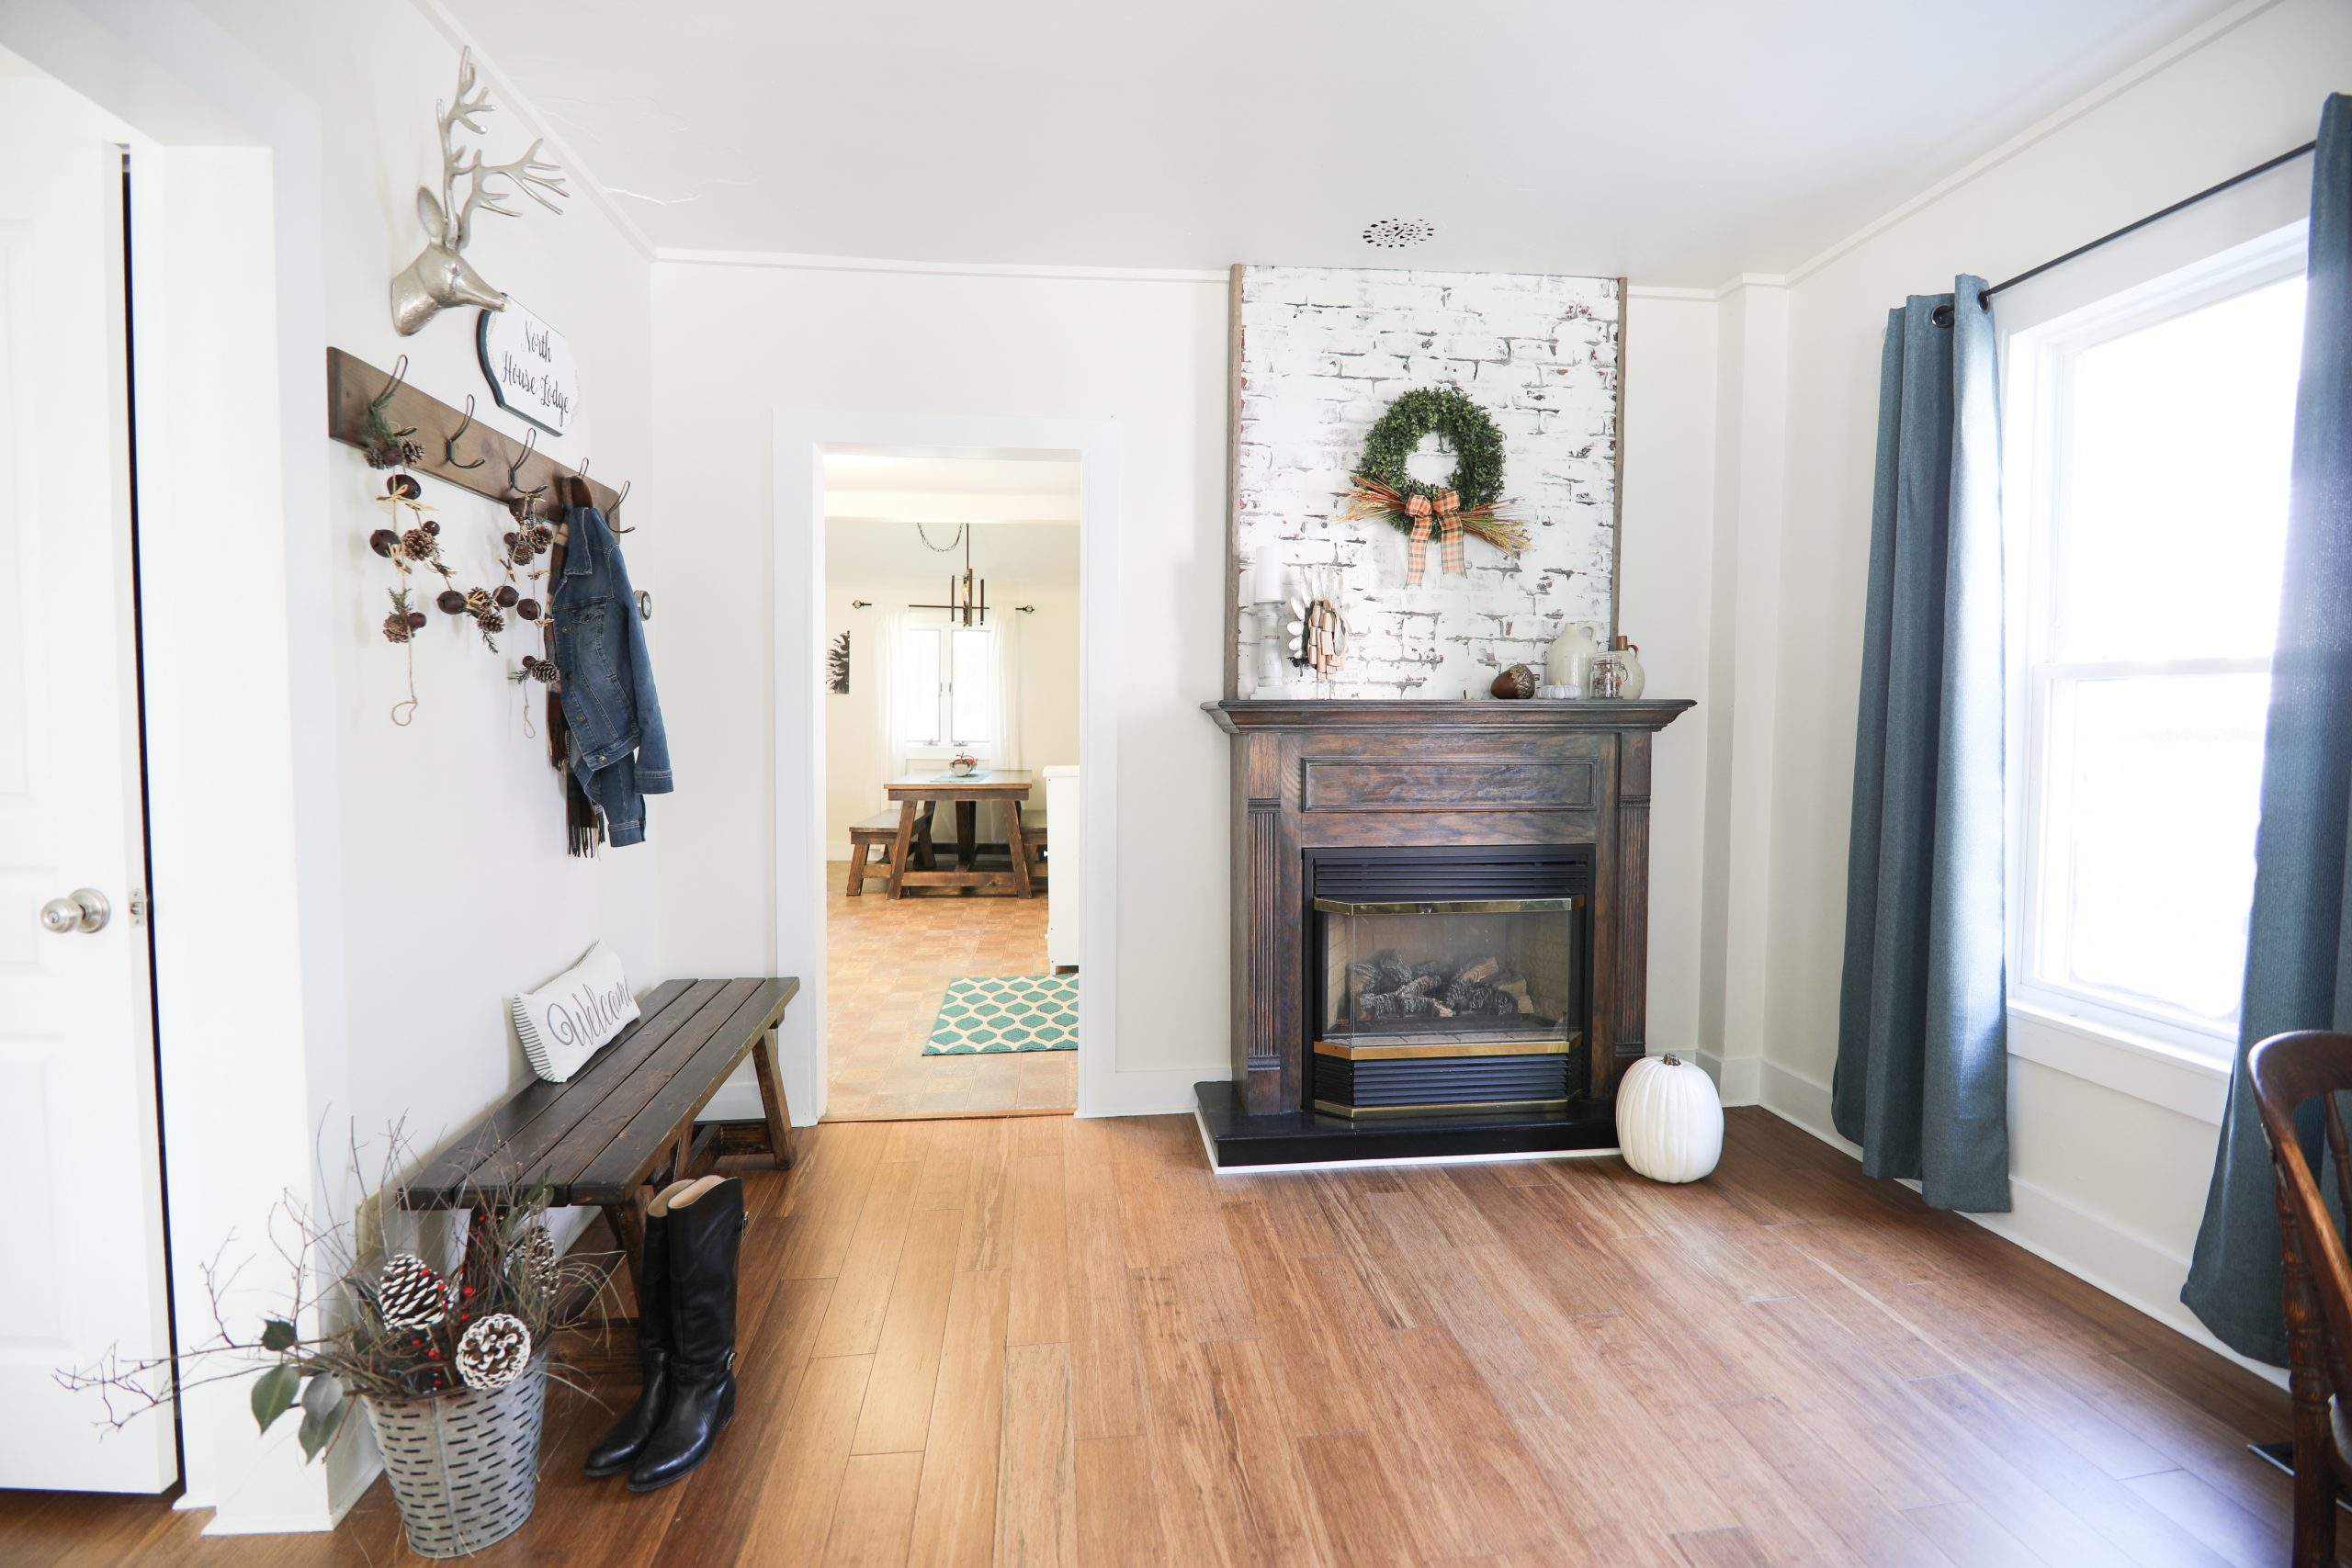 Tour of North House Lodge #54 unit, upscale vacation rental in Ludlow, Vermont